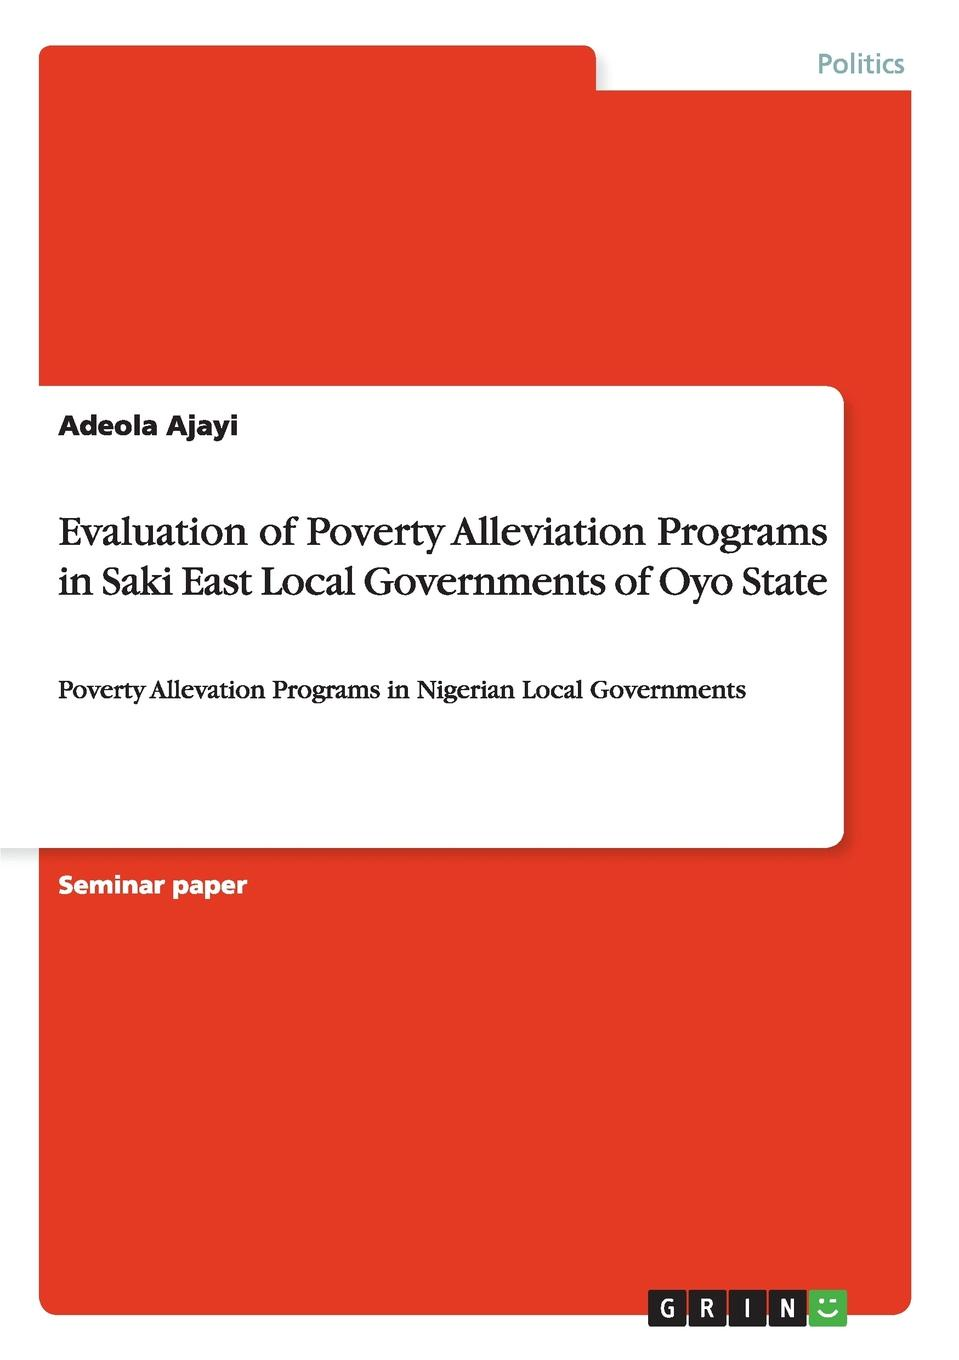 Adeola Ajayi Evaluation of Poverty Alleviation Programs in Saki East Local Governments of Oyo State micro perspectives on poverty alleviation in kenya